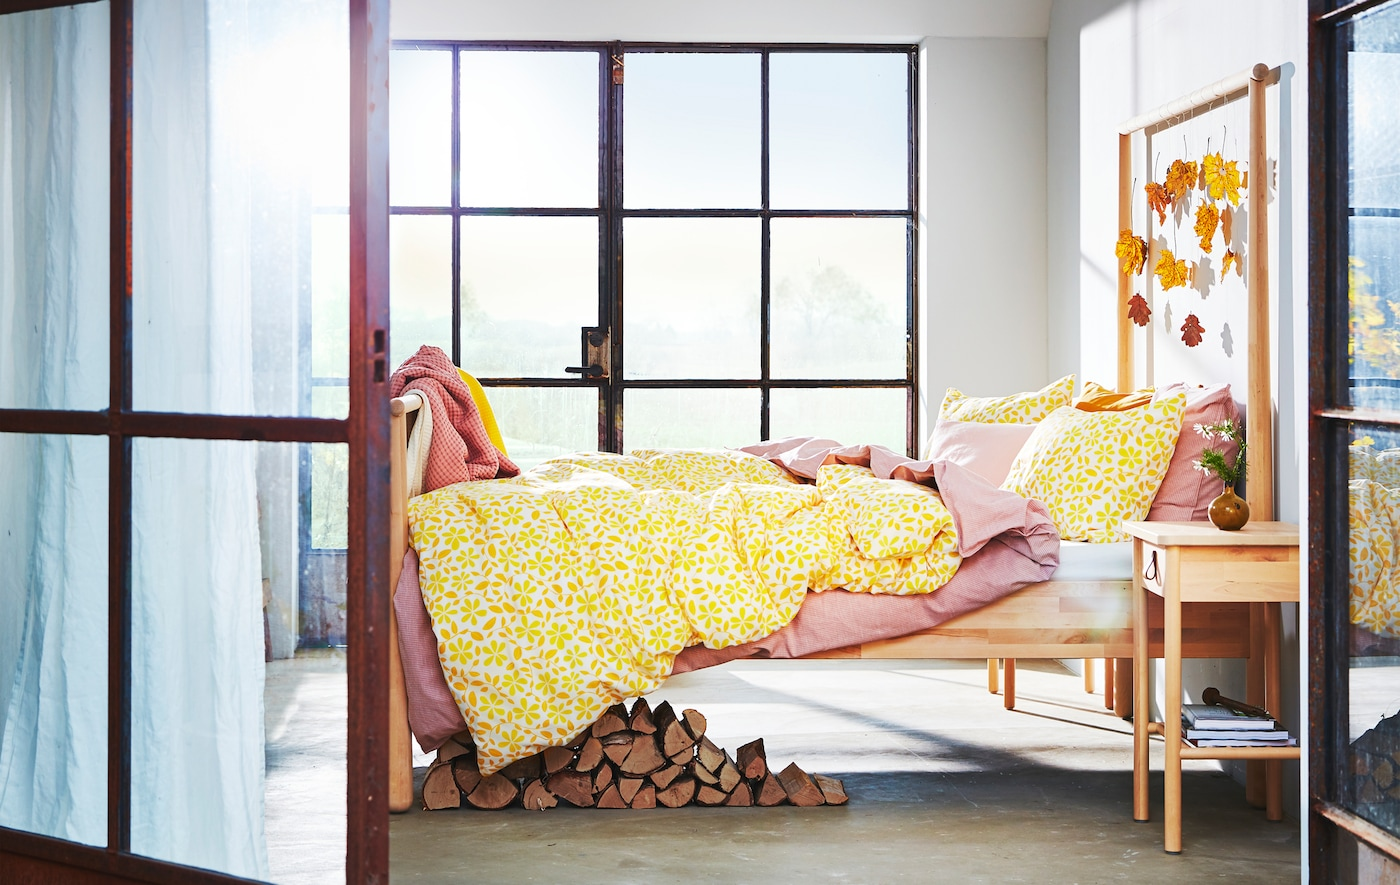 A bedroom with large windows, autumn coloured leaves hanging from a wooden bedframe and yellow and pink layered bedding.